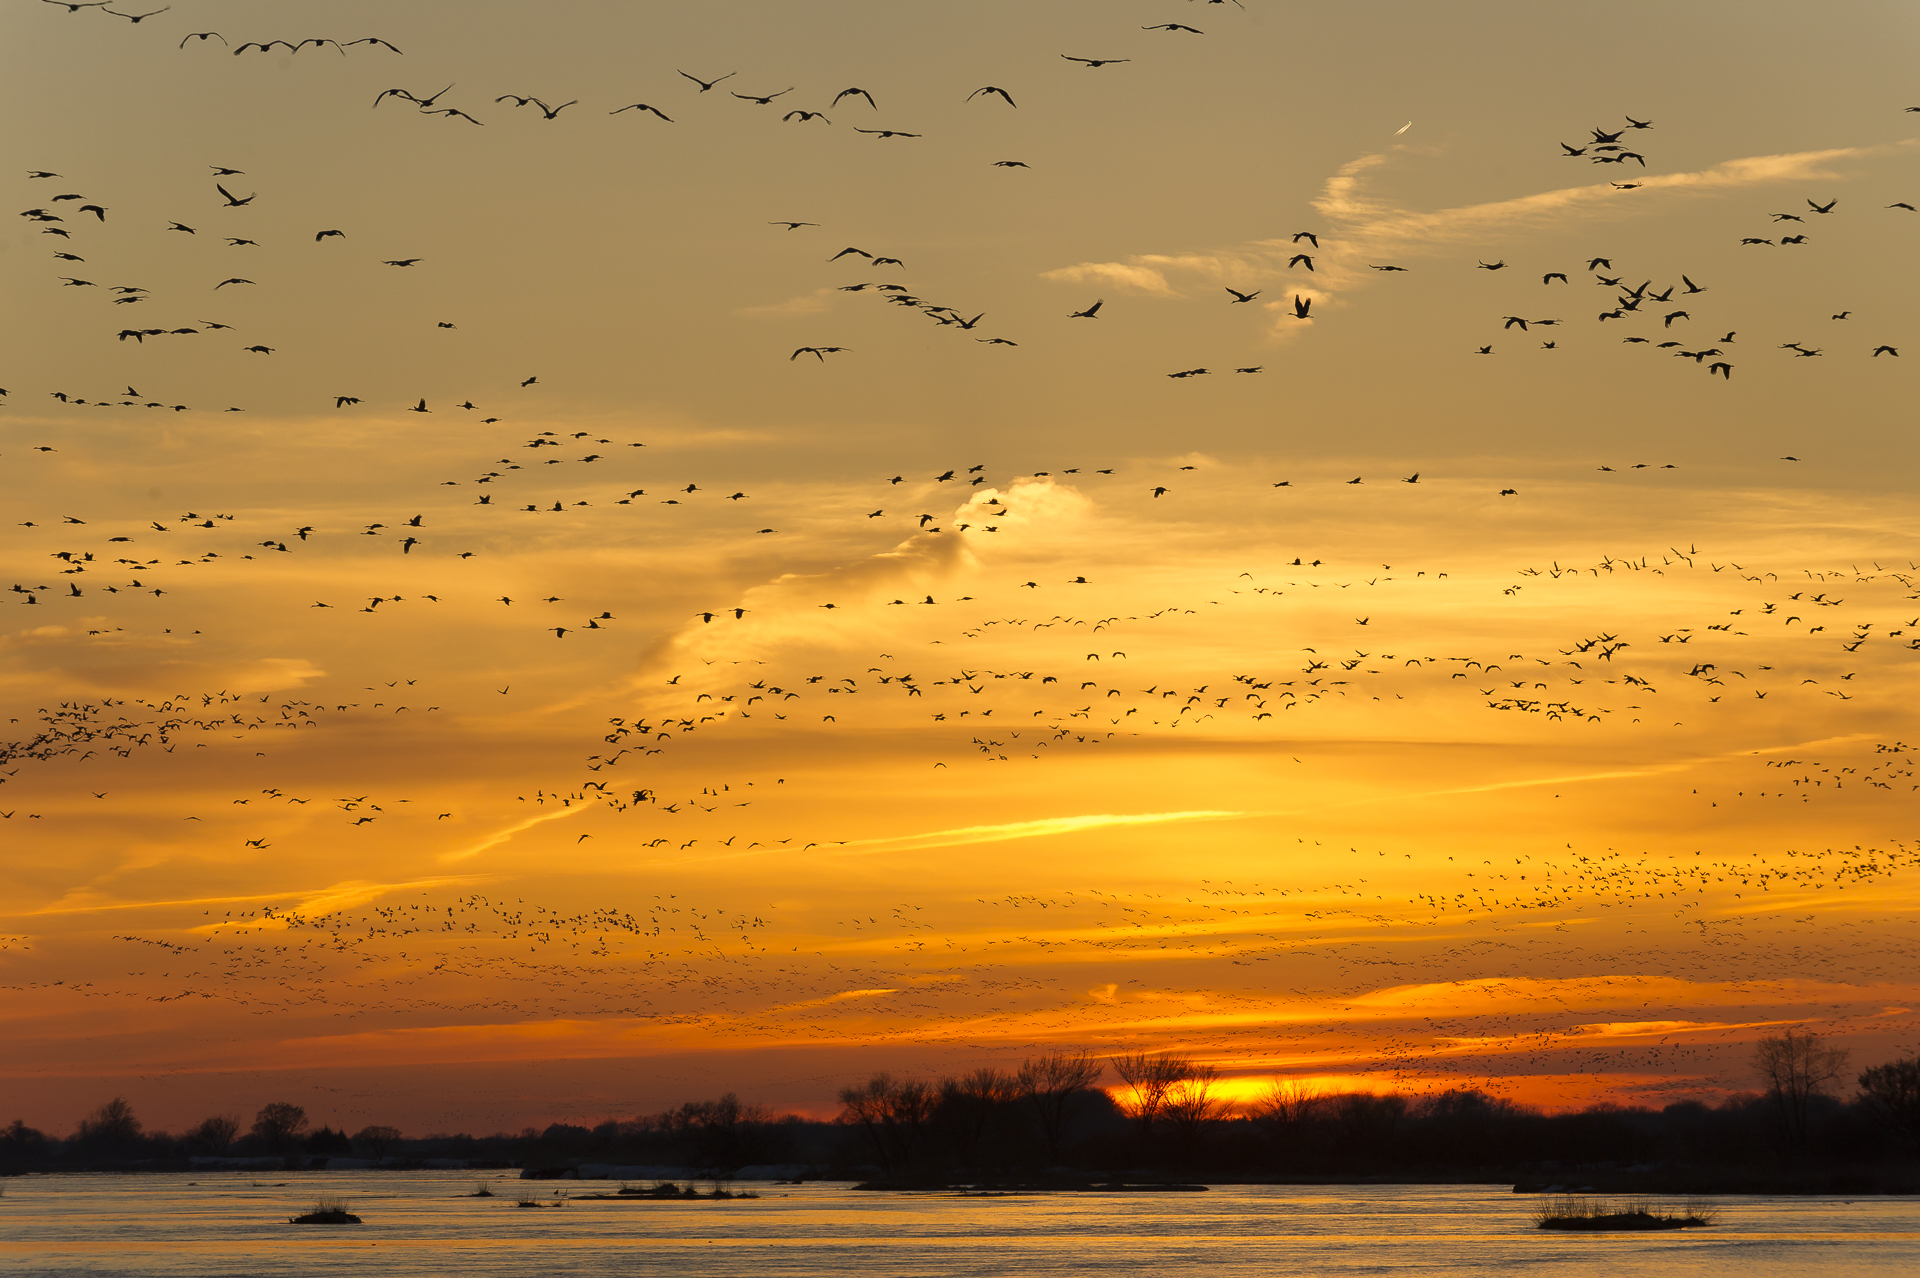 Crowded skies: cranes coming down to roost on the Platte River